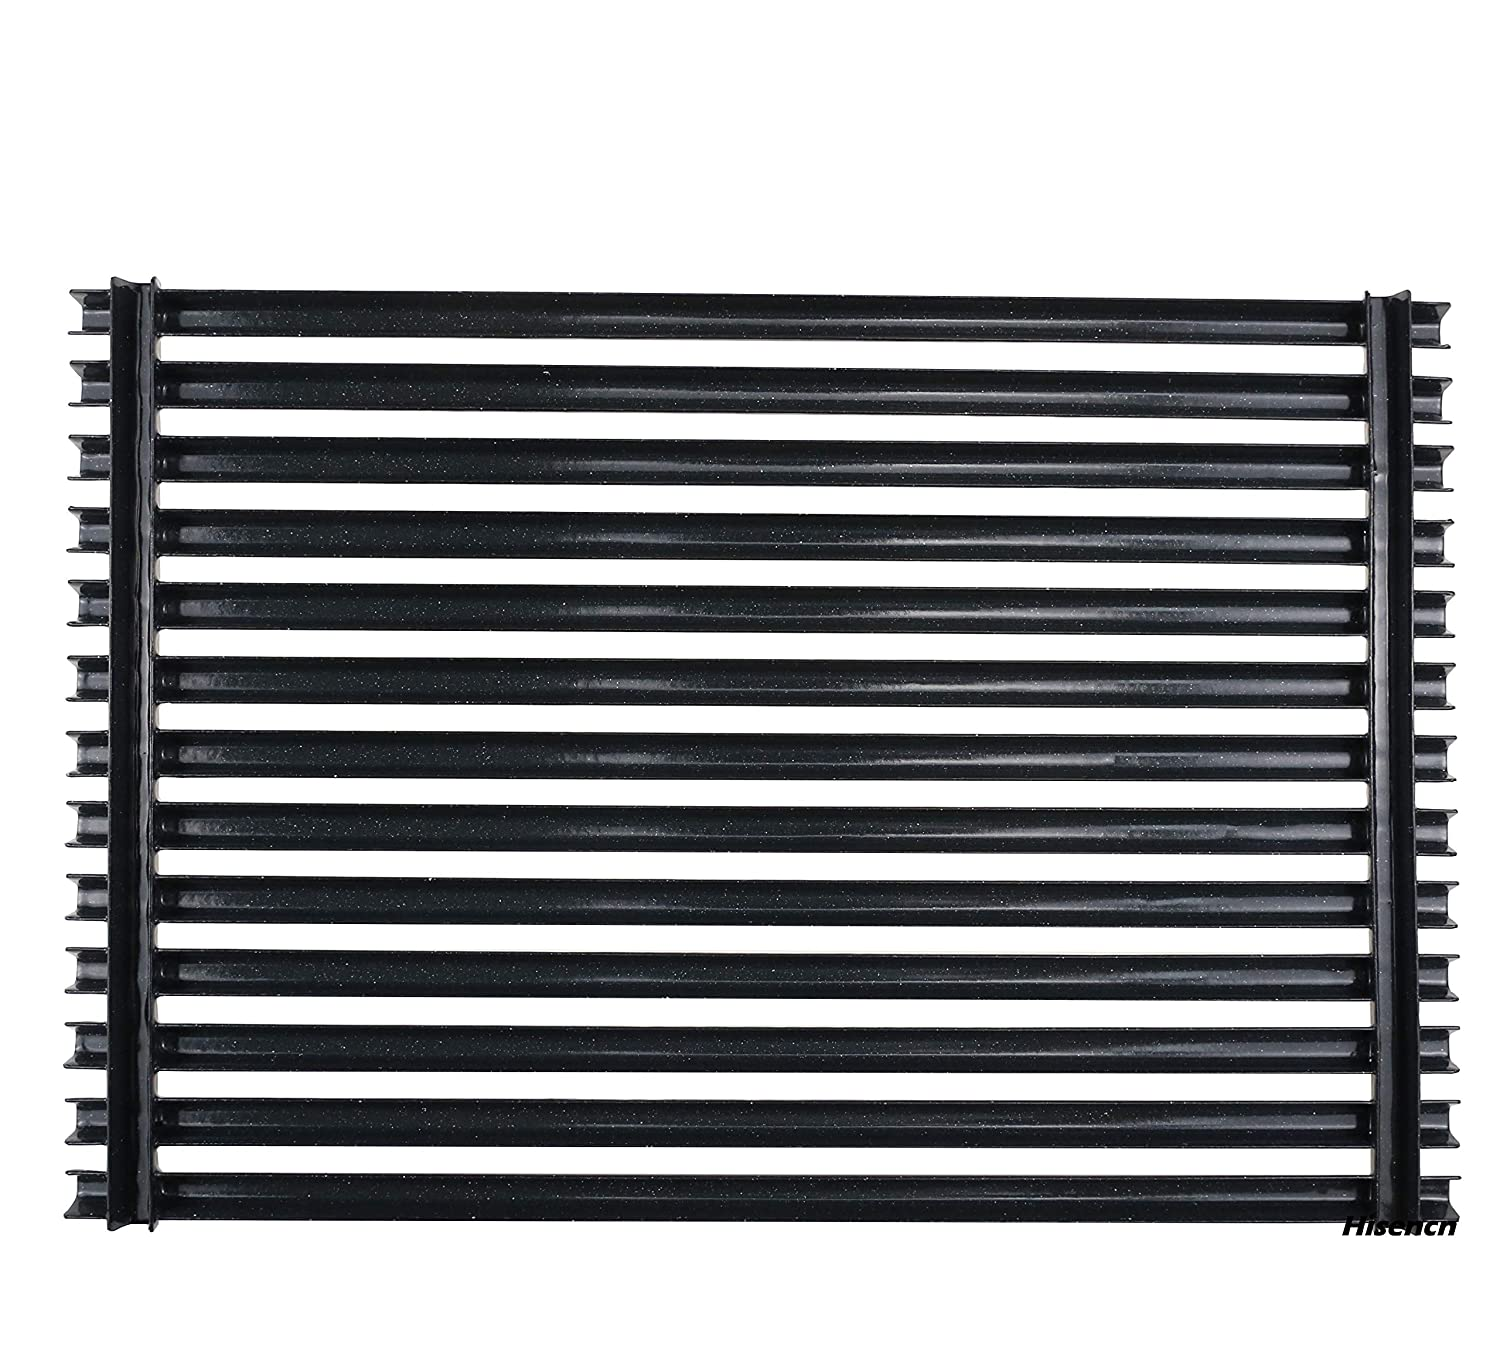 Amazon.com : Hisencn 7527 9869 7526 7525 Porcelain Enameled Grates (17.4 x 11.8 x 0.25) Replacement Cooking Grids for Weber 7527, Spirit and Genesis Lowes ...